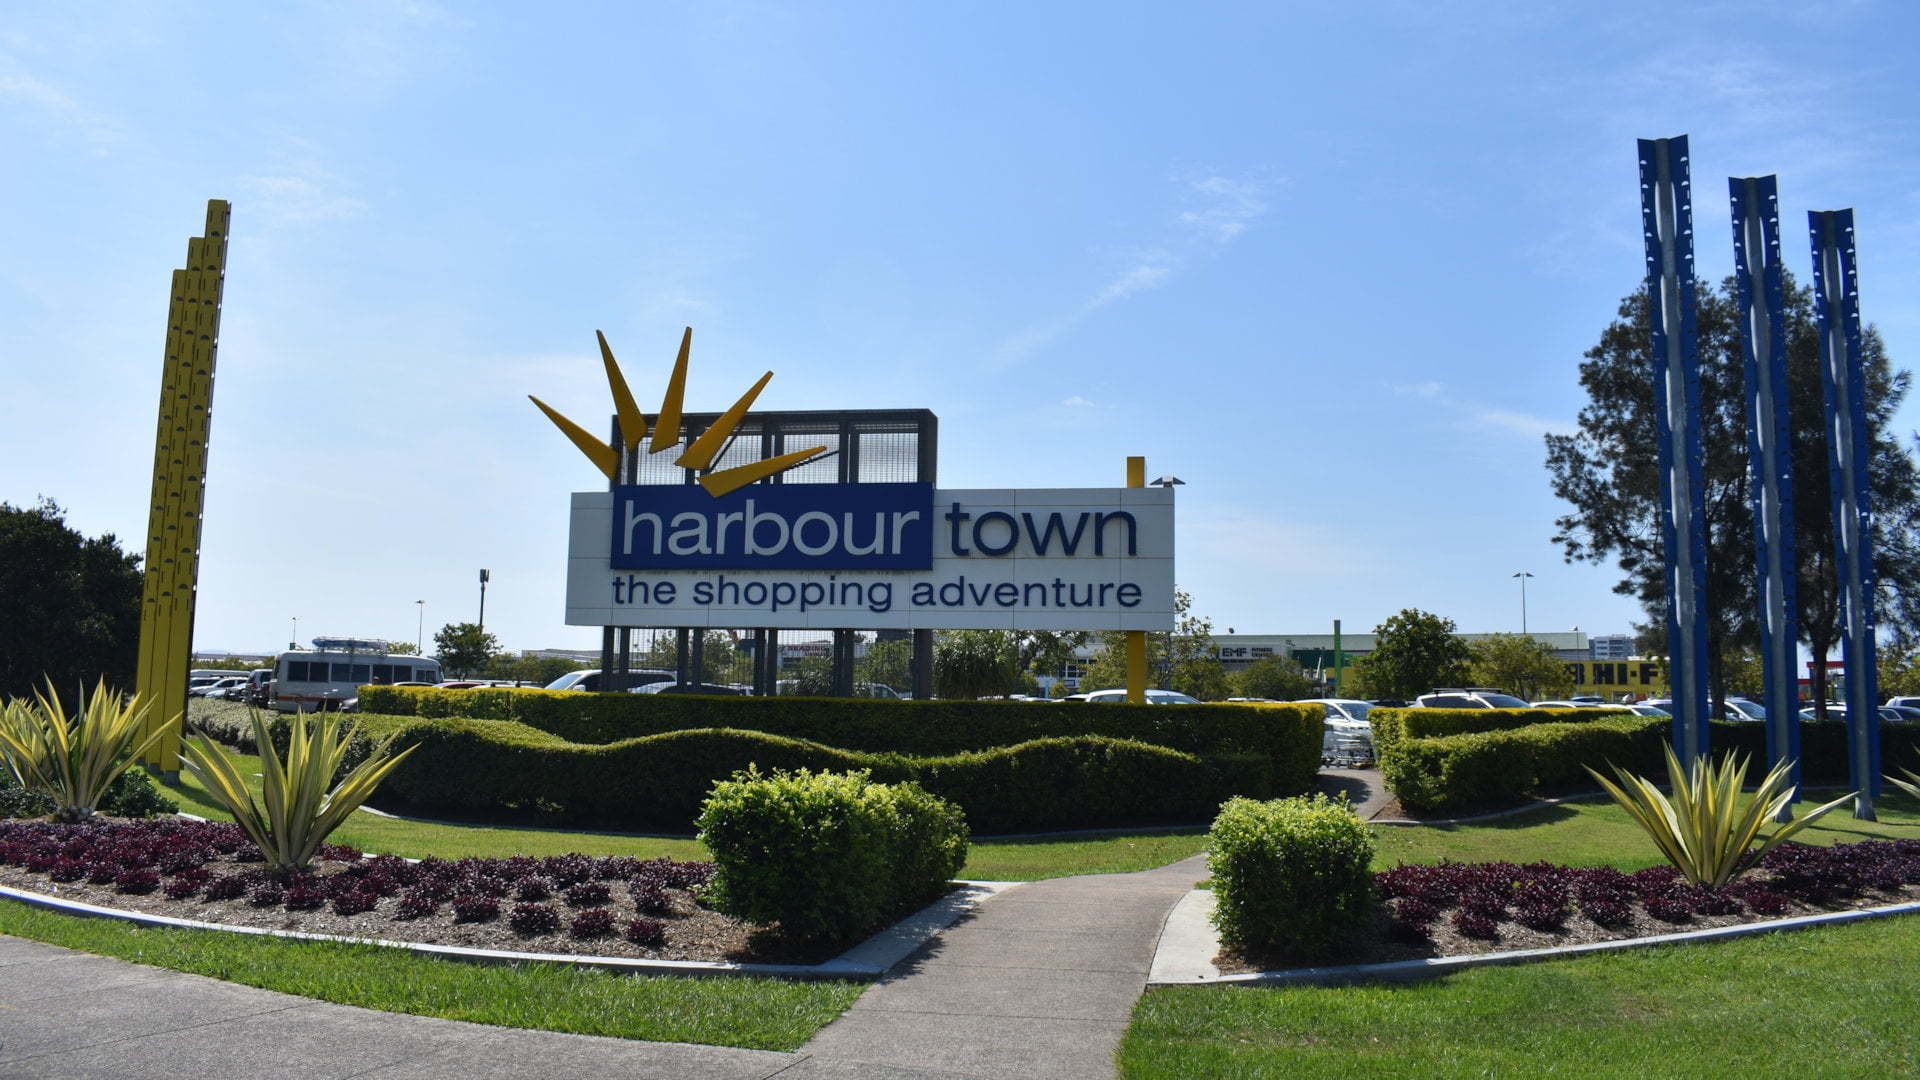 Sign for Harbour Town Shopping Centre, the shopping adventure